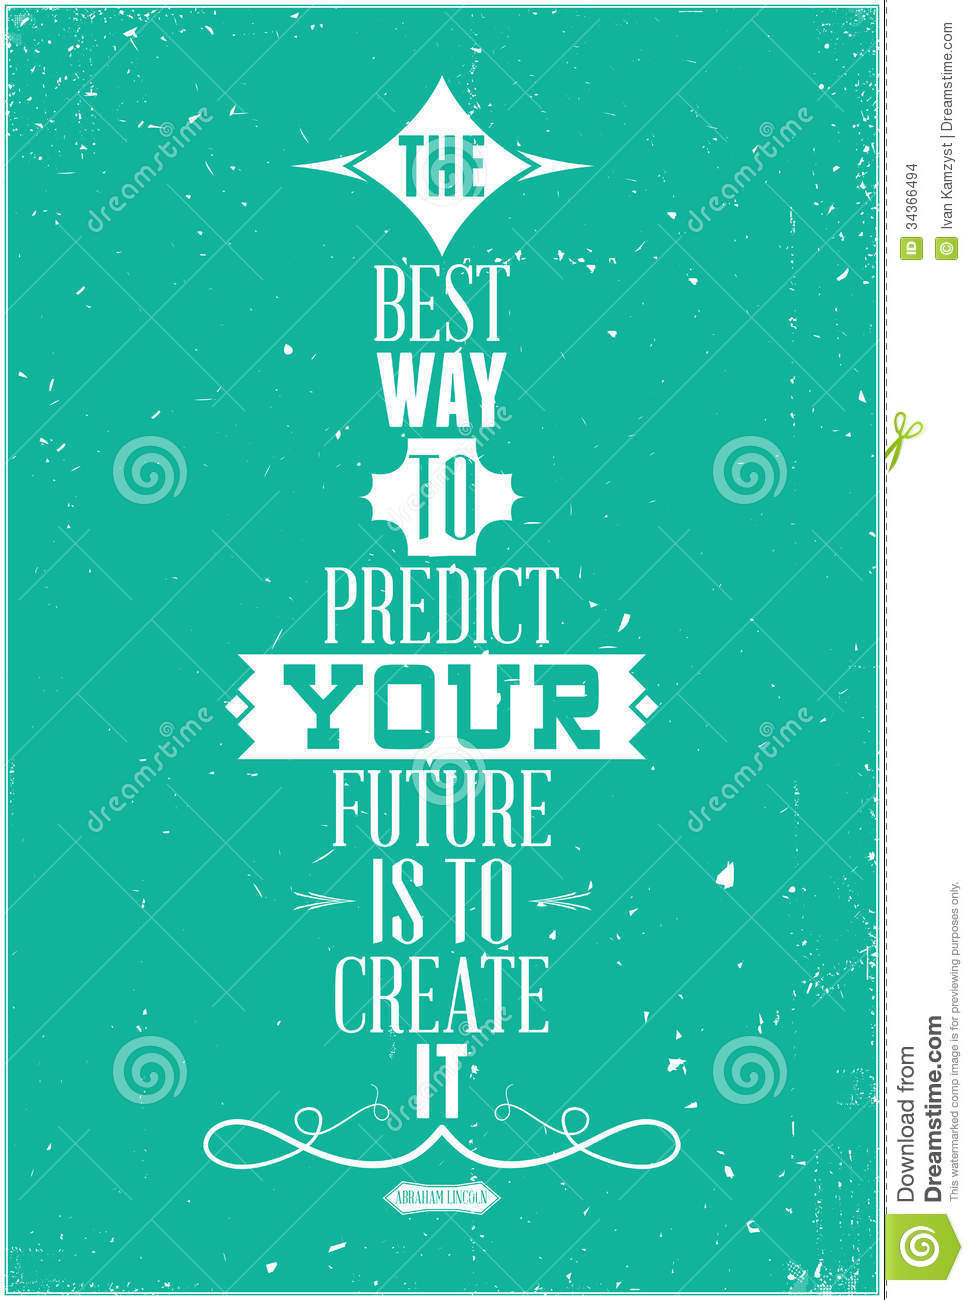 The Best Way To Predict Your Future Is To Create I Stock. How To Write A Resum. 30 Second Resume Test. Posting Resume. Make Professional Resume Online Free. Keywords For Finance Resume. Free Word Resume Template Download. Sample Of Application Letter And Resume. Free Downloadable Resume Templates For Word 2010